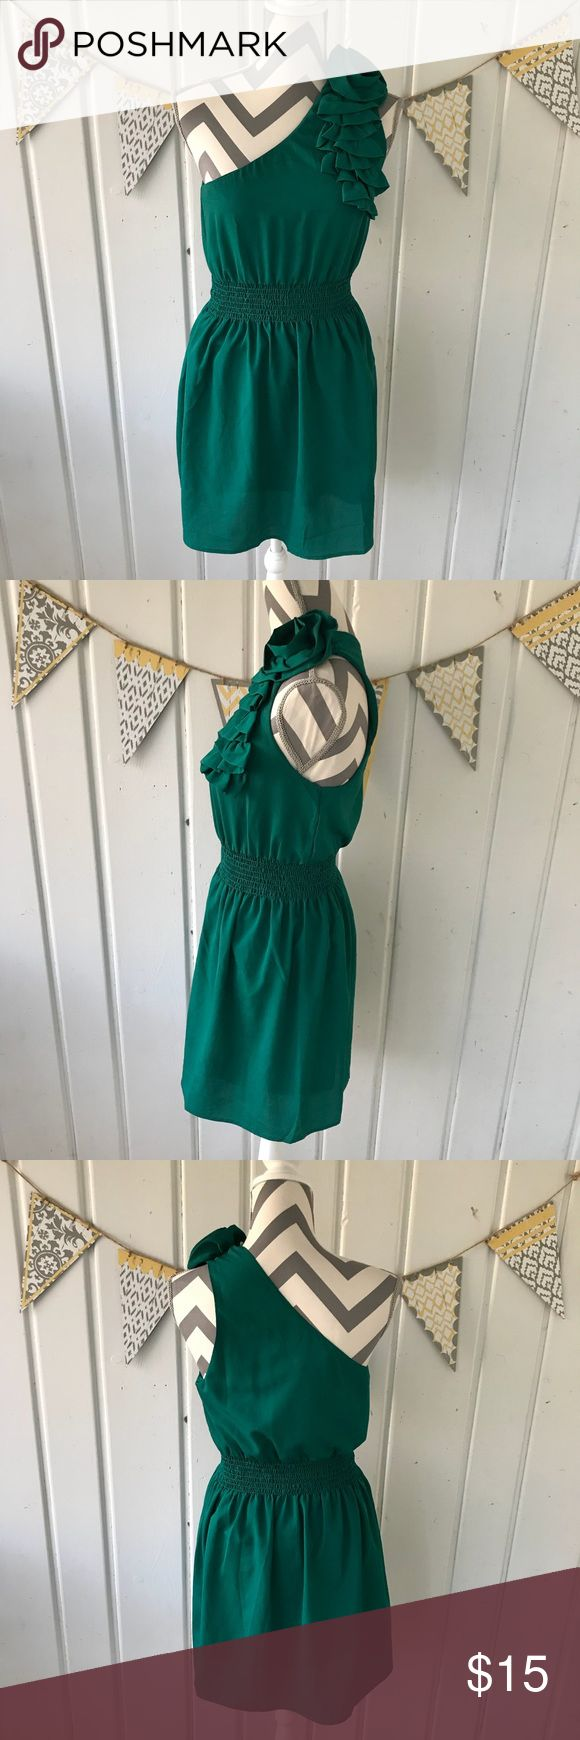 "Forever 21 One Shoulder Green Mini Dress Adorable one shoulder dress from Forever 21. It is in very good condition. Features a floral ruffle on the shoulder. Perfect to wear to a summer wedding. Approximately 34"" long Forever 21 Dresses One Shoulder"